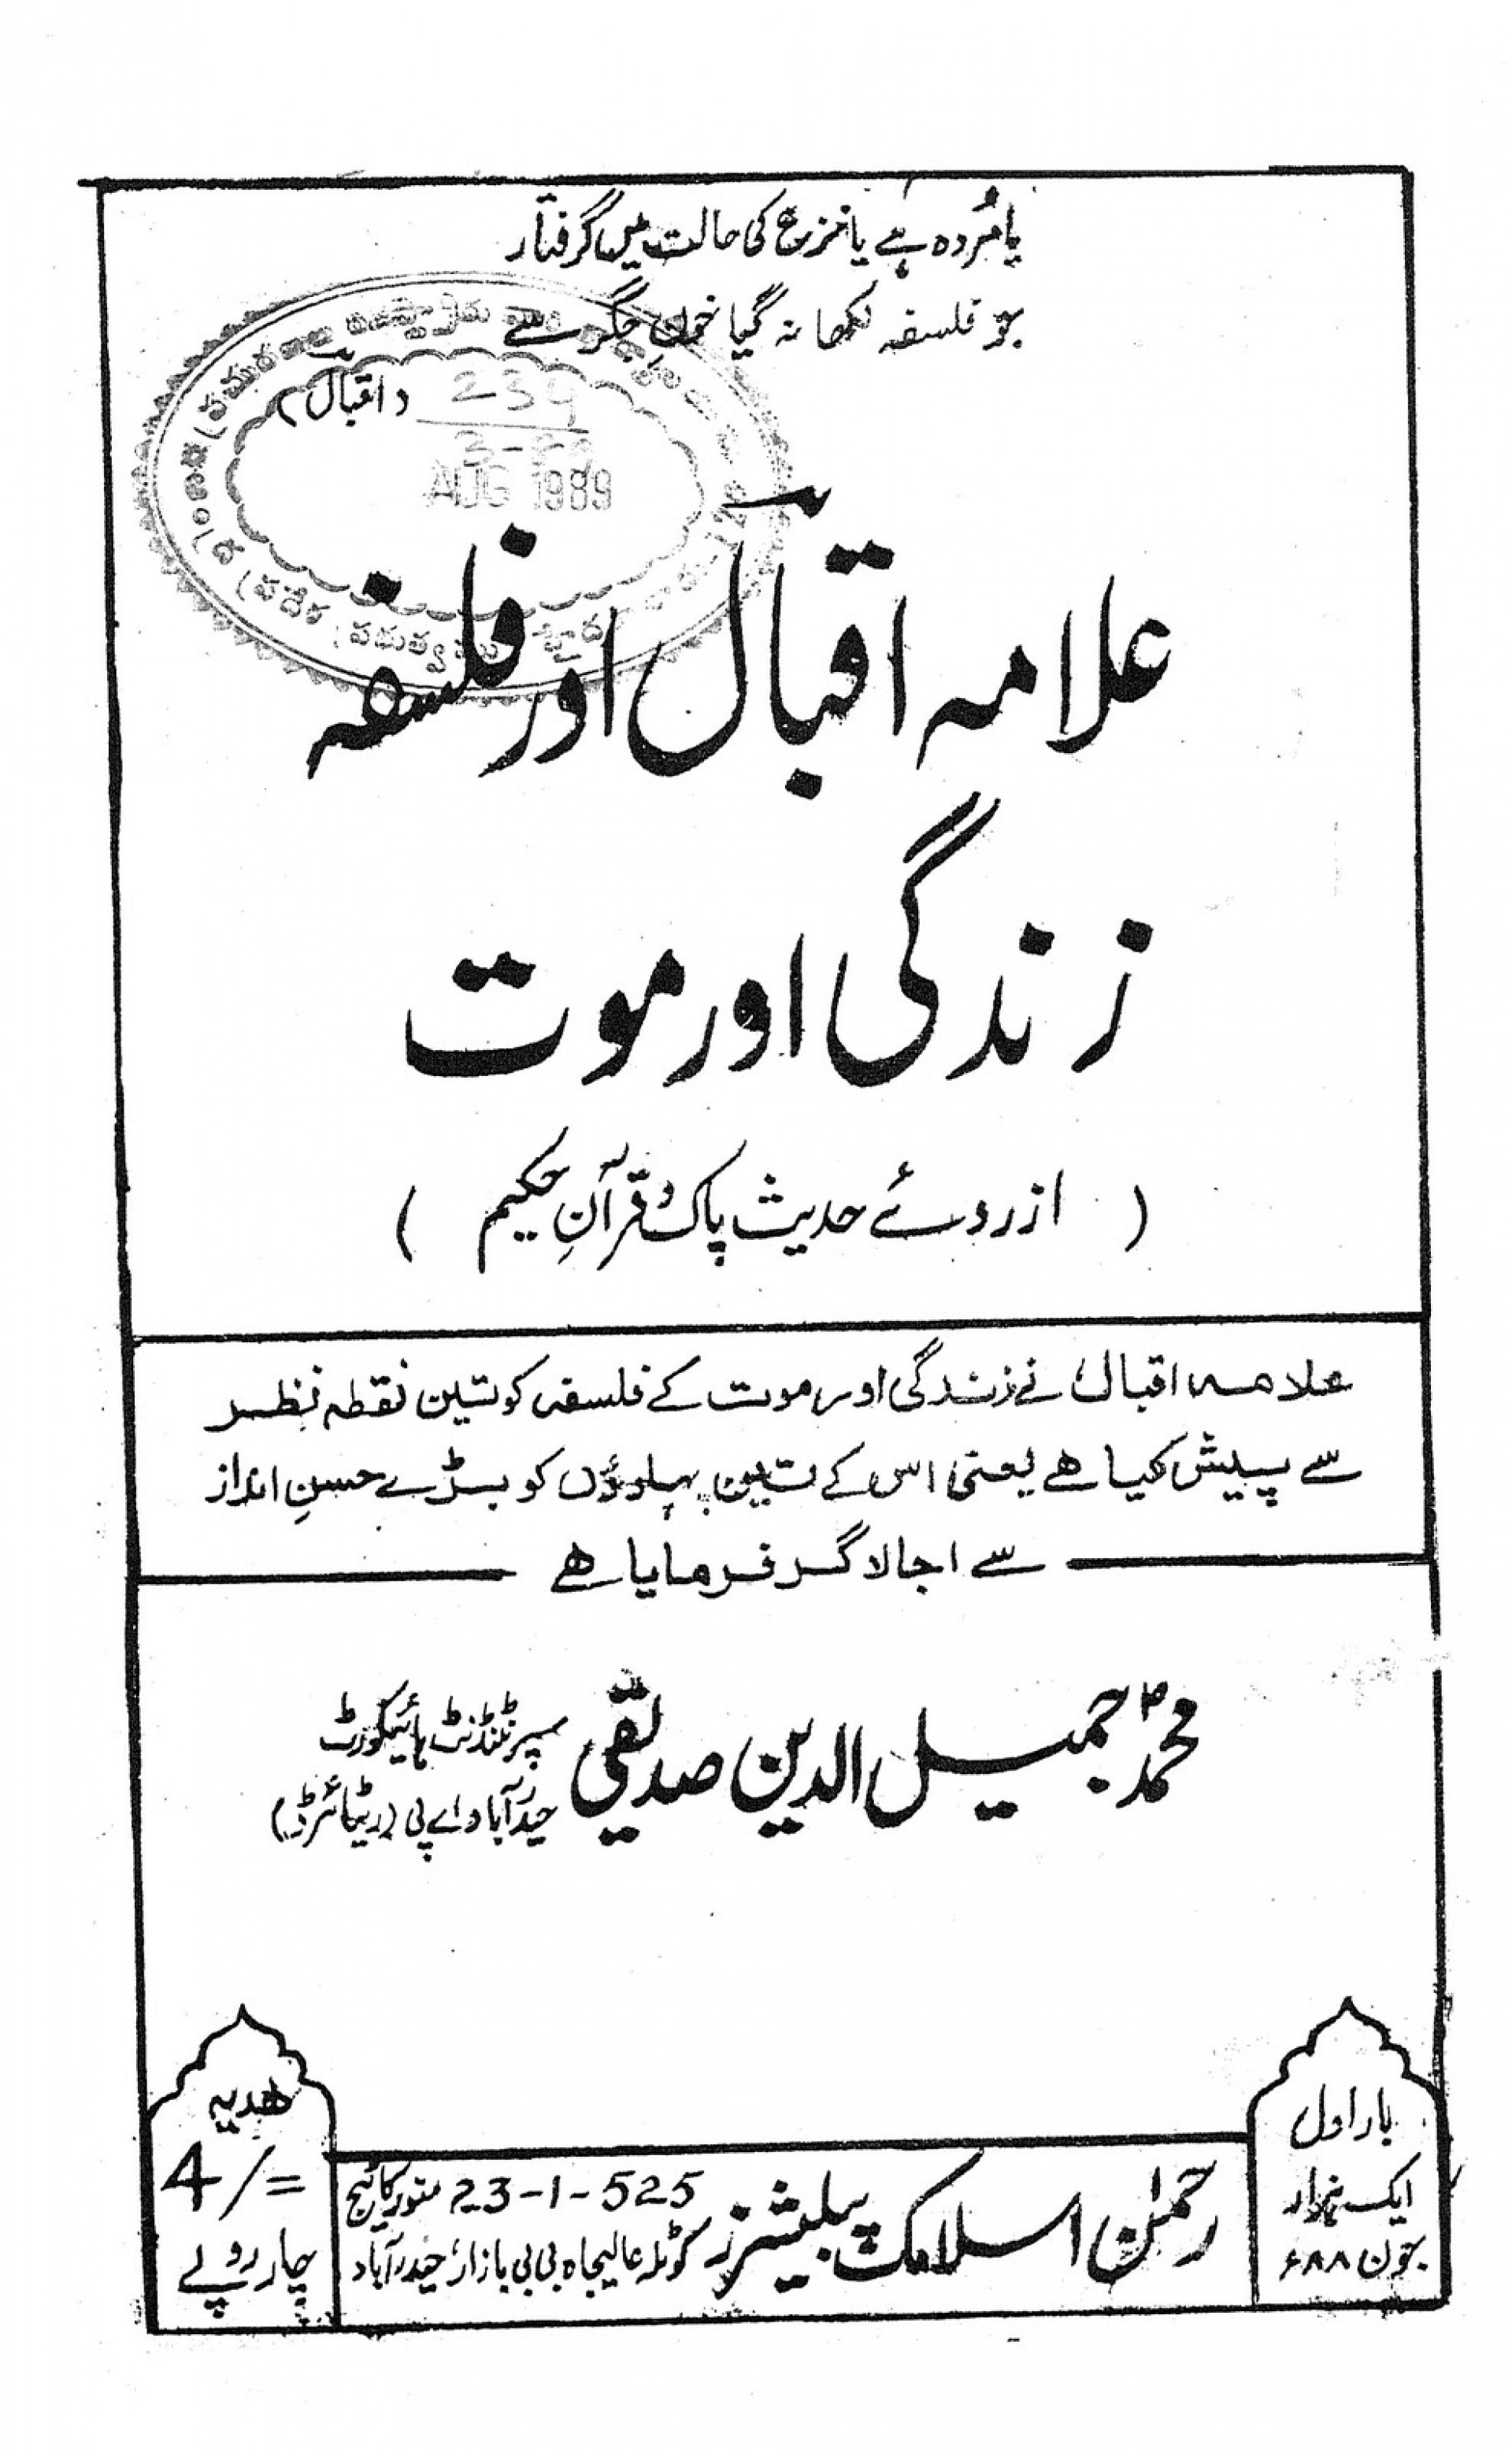 015 Allamaiqbalaurfalsafa Zindagi Aur Maut Urdu Essay Allama Iqbal Dreaded On In For Class 10 With Poetry Ka Shaheen Headings And 1920